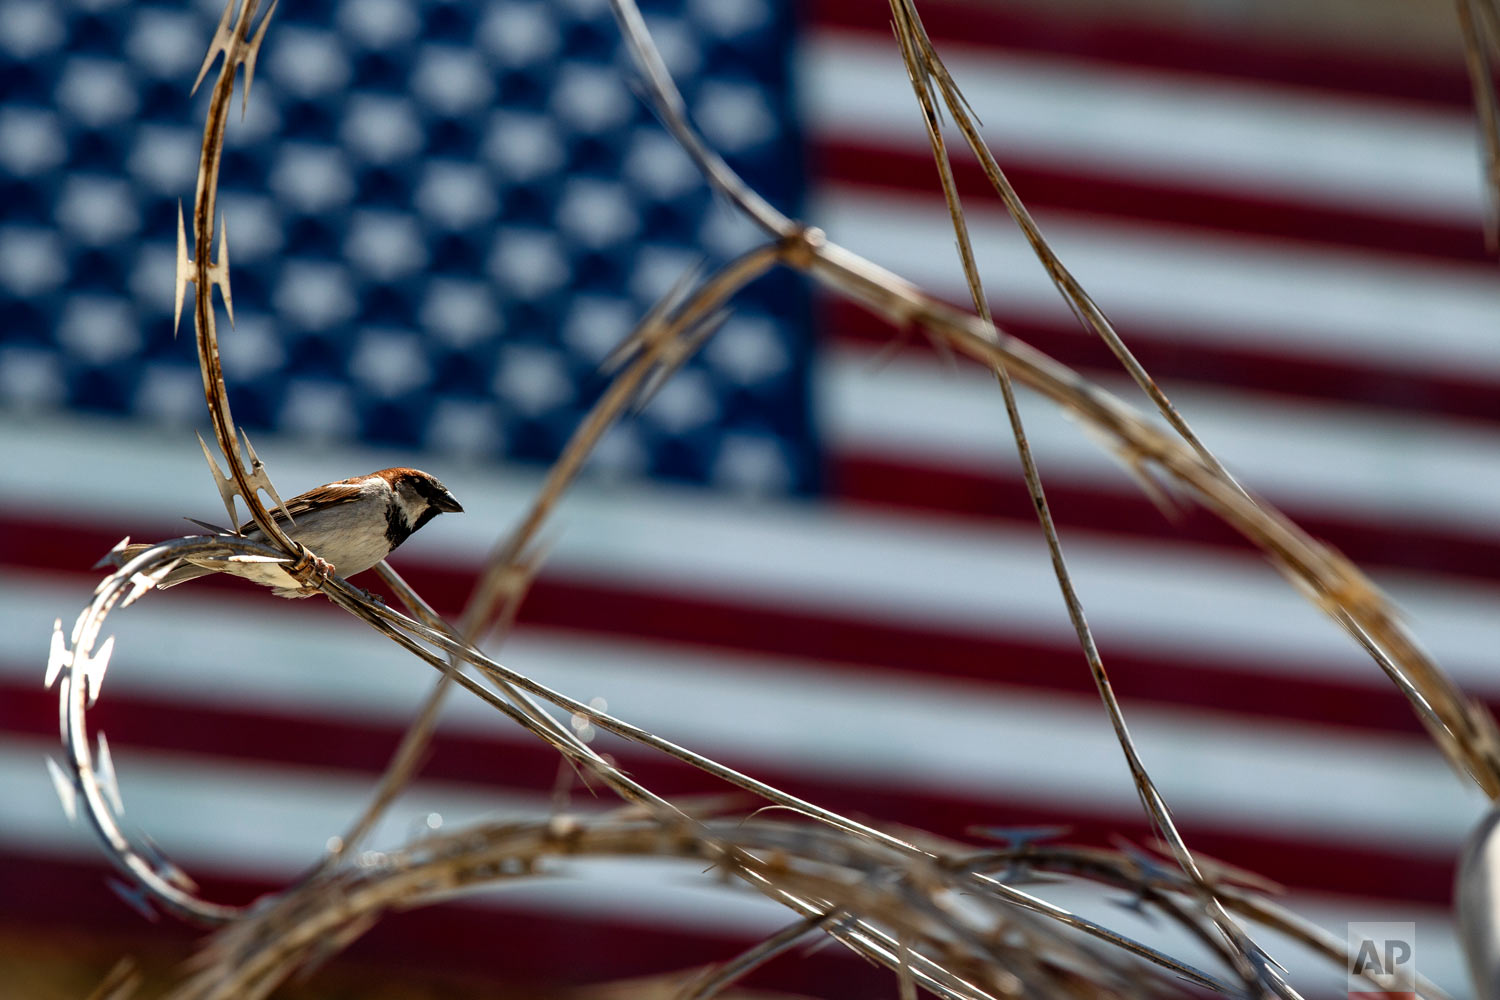 In this photo reviewed by U.S. military officials, a sparrow sits on the razor wire of the Camp VI detention facility, April 17, 2019, in Guantanamo Bay Naval Base, Cuba. (AP Photo/Alex Brandon)